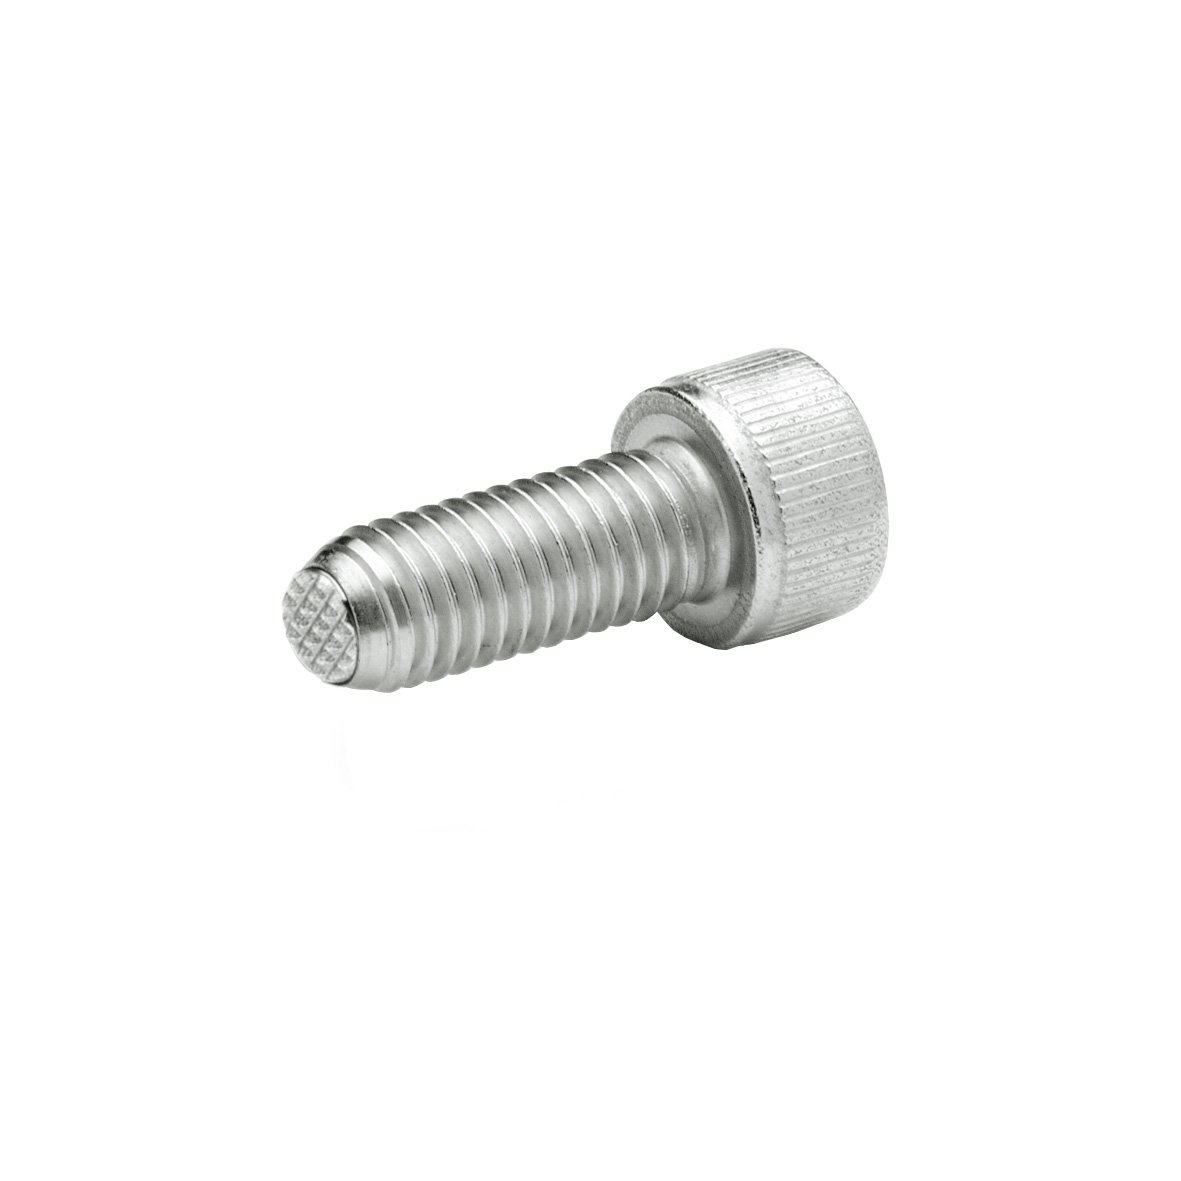 J.W. Winco 16N80P48/VRN GN606-NI Socket Head Cap Screw with Serrated Flat Ball, Safety Twist Feature, M16 x 80 mm Thread Length, Stainless Steel